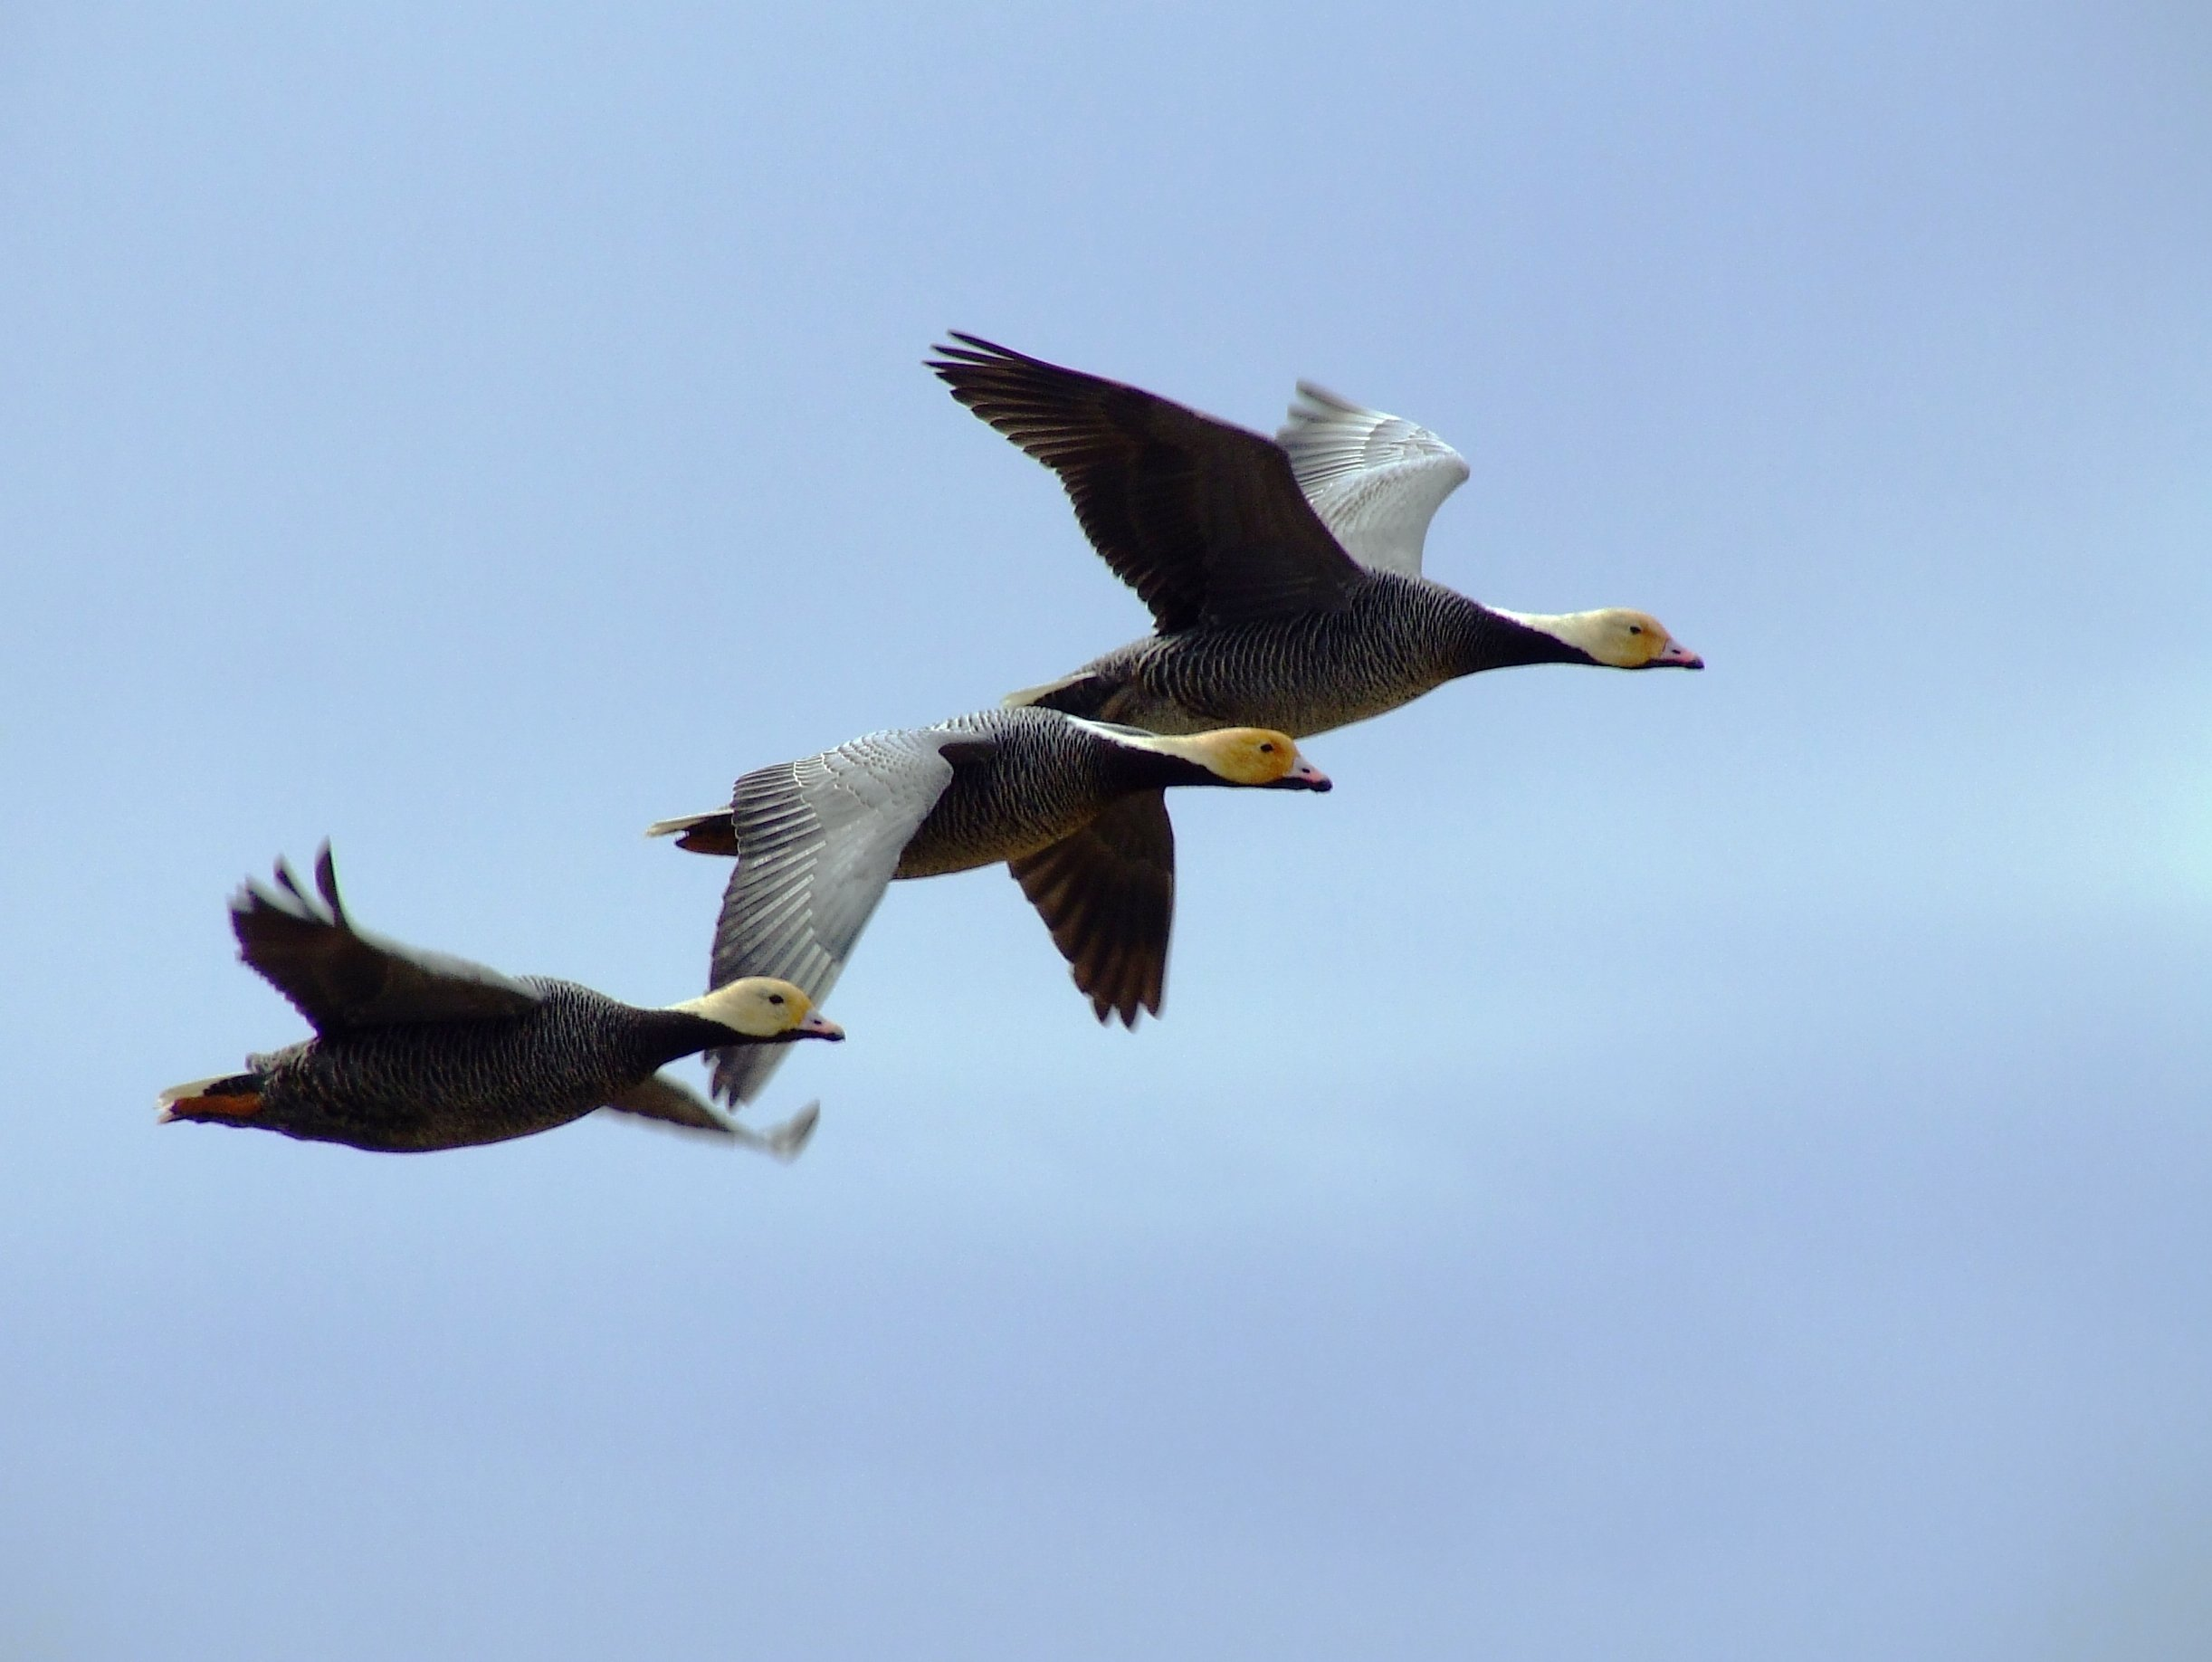 First chance in 30 years: Emperor geese are in season again